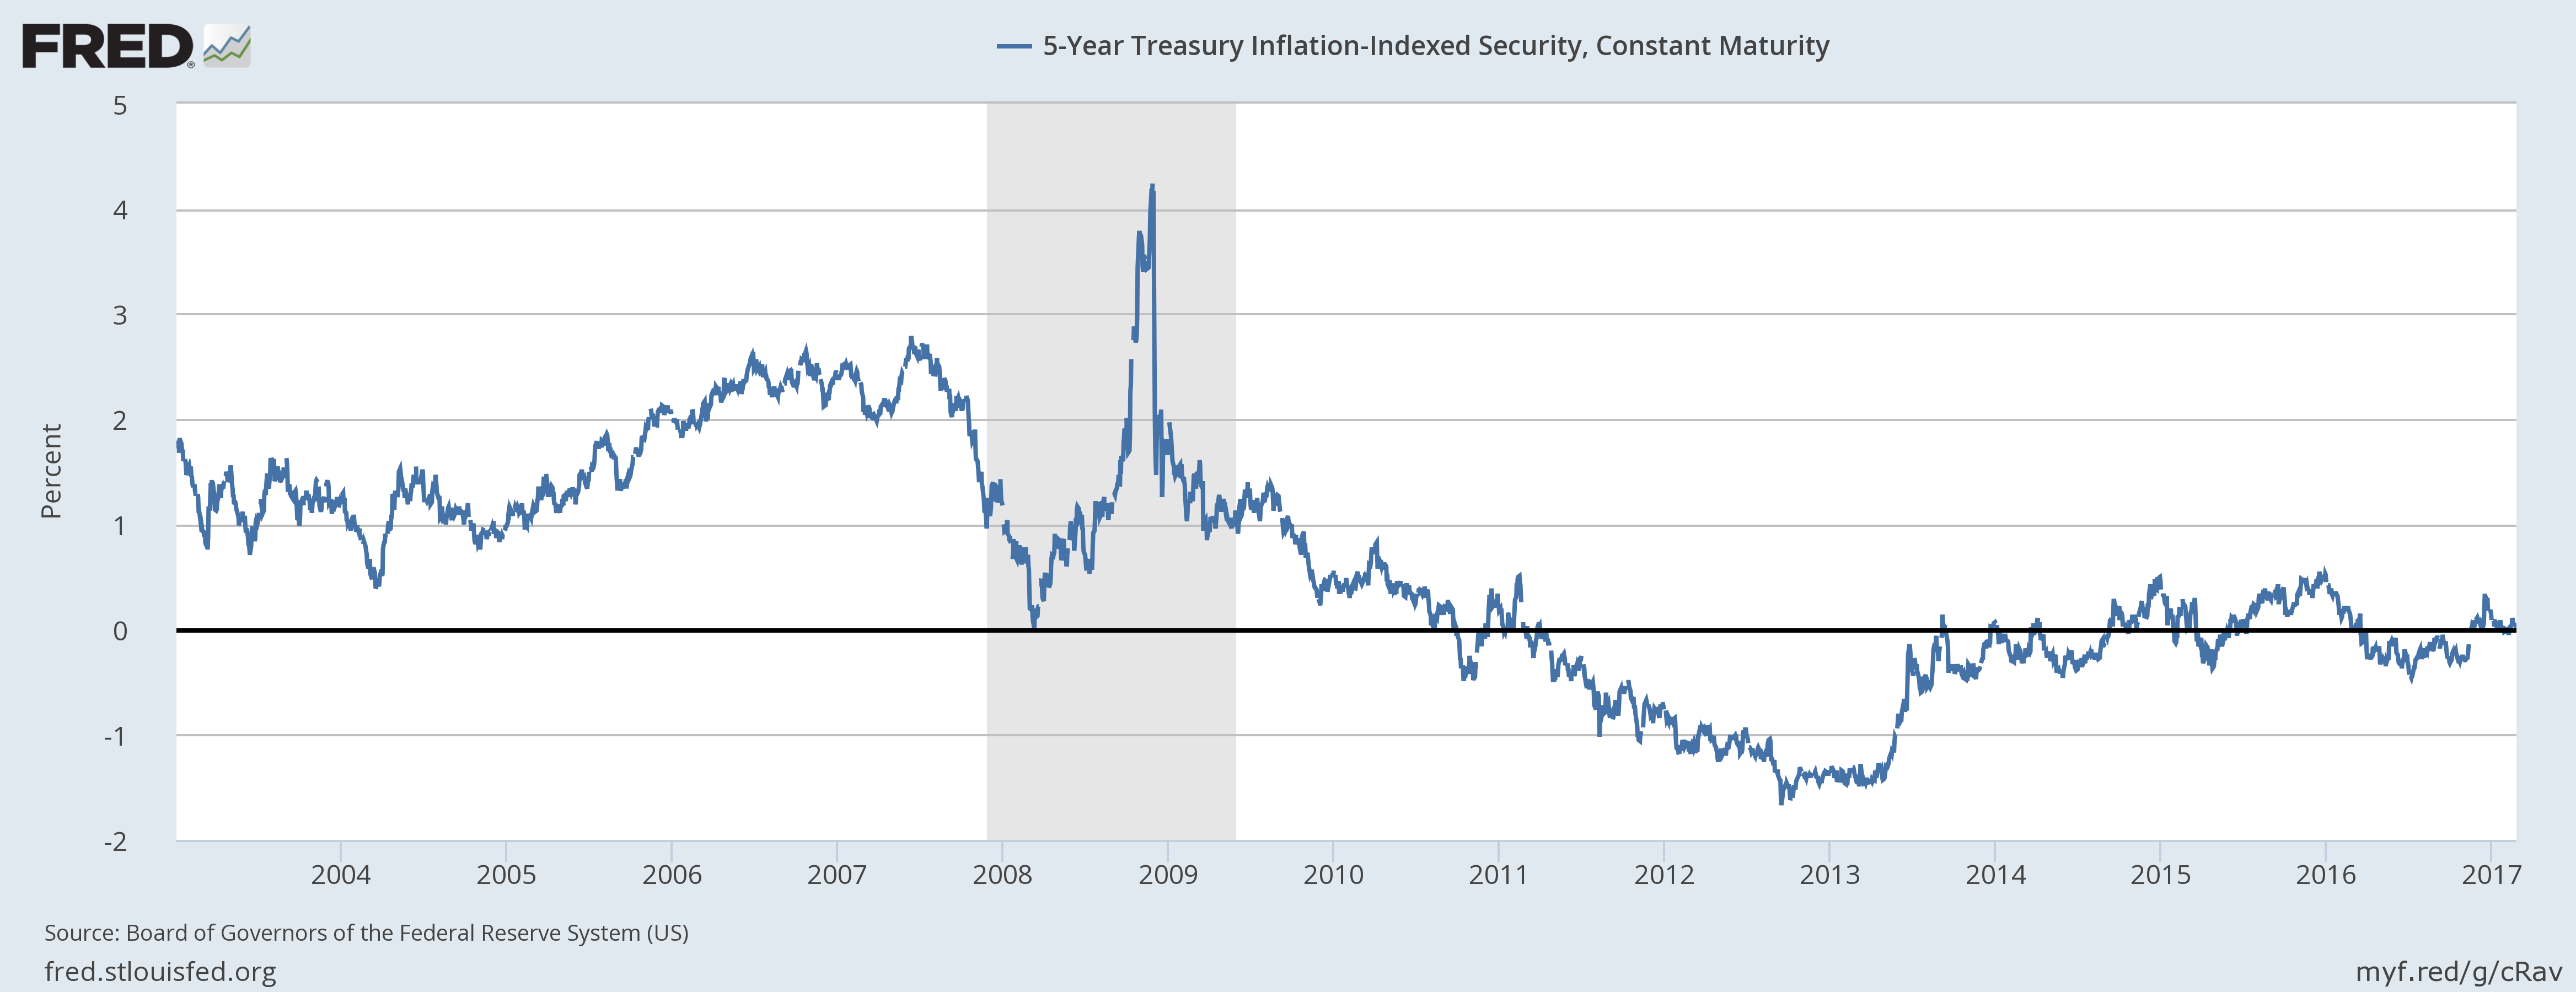 5-Year Treasury Inflation-Indexes Security 2004-2017